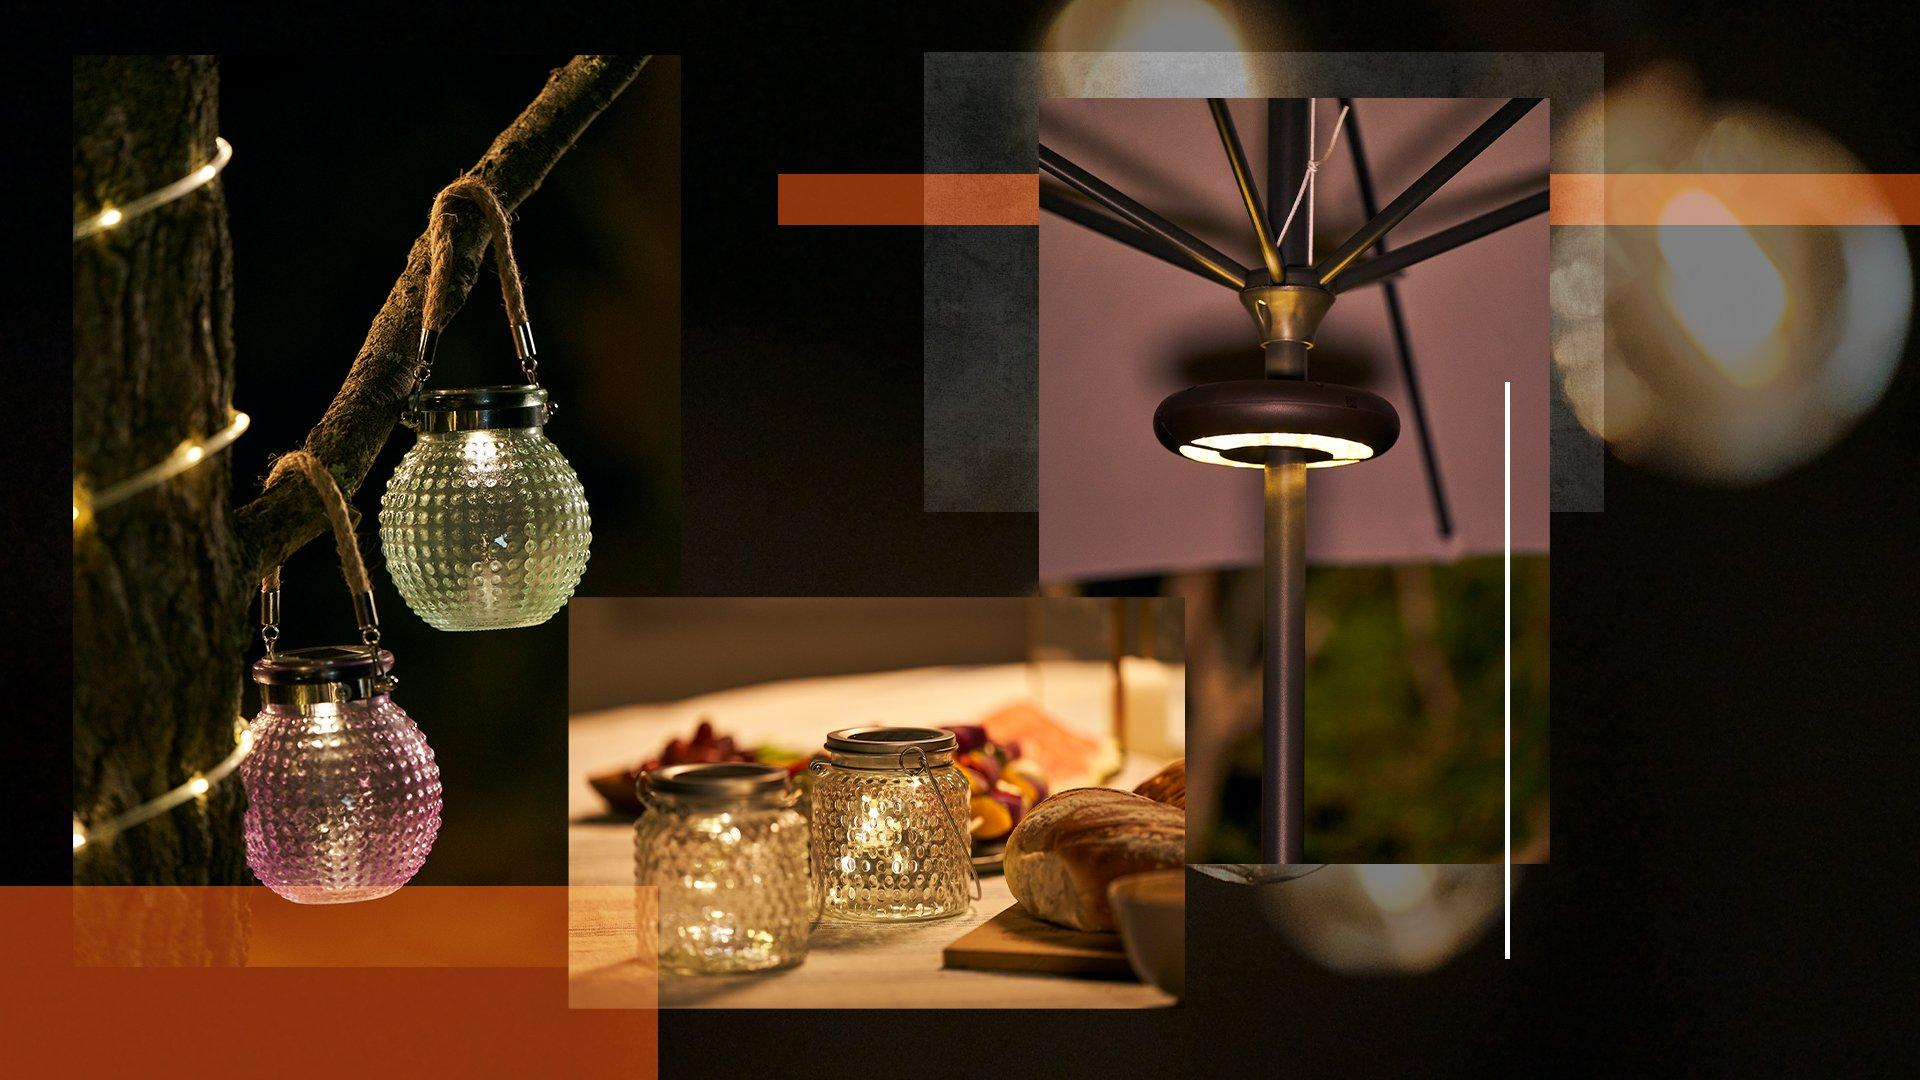 A collage of images showcasing the selection of Hi Gear lights including an umbrella light and jar lights in a night time setting.